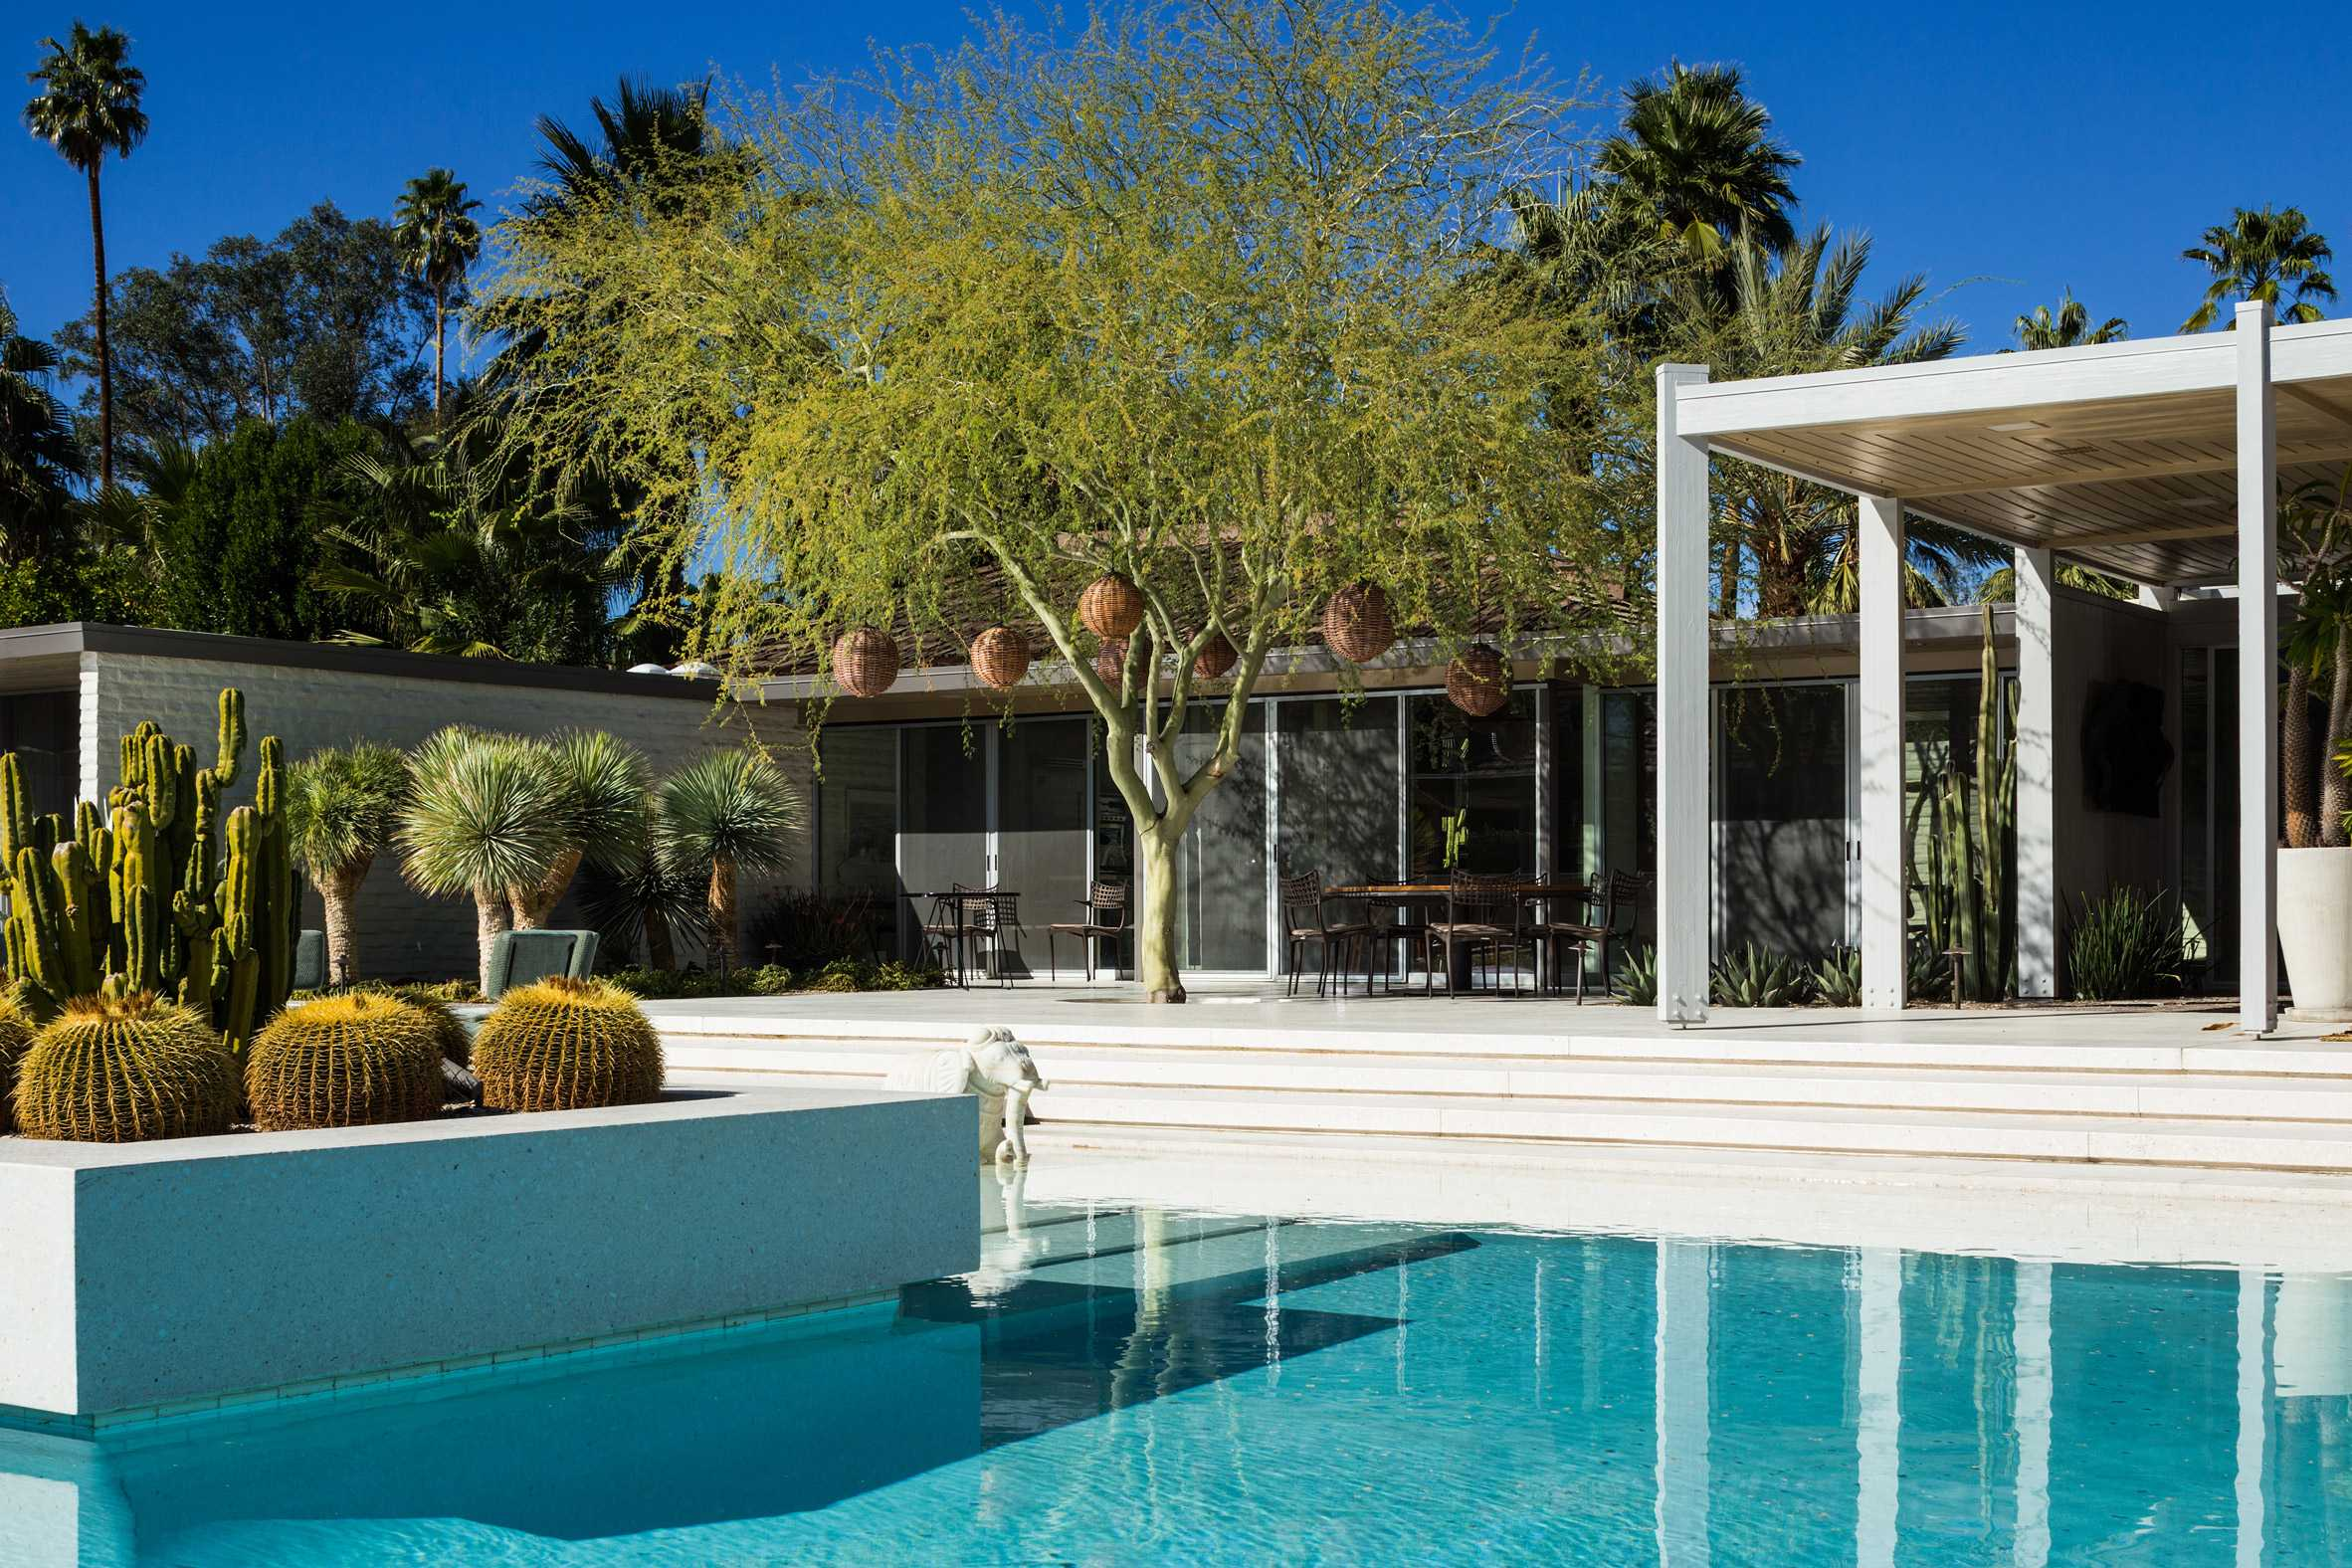 this-is-the-Abernathy-Residence-located-in-Palm-Springs-showing-the-outside-swimming-pool-and-view-of-the-classic-mid-century-modern-design